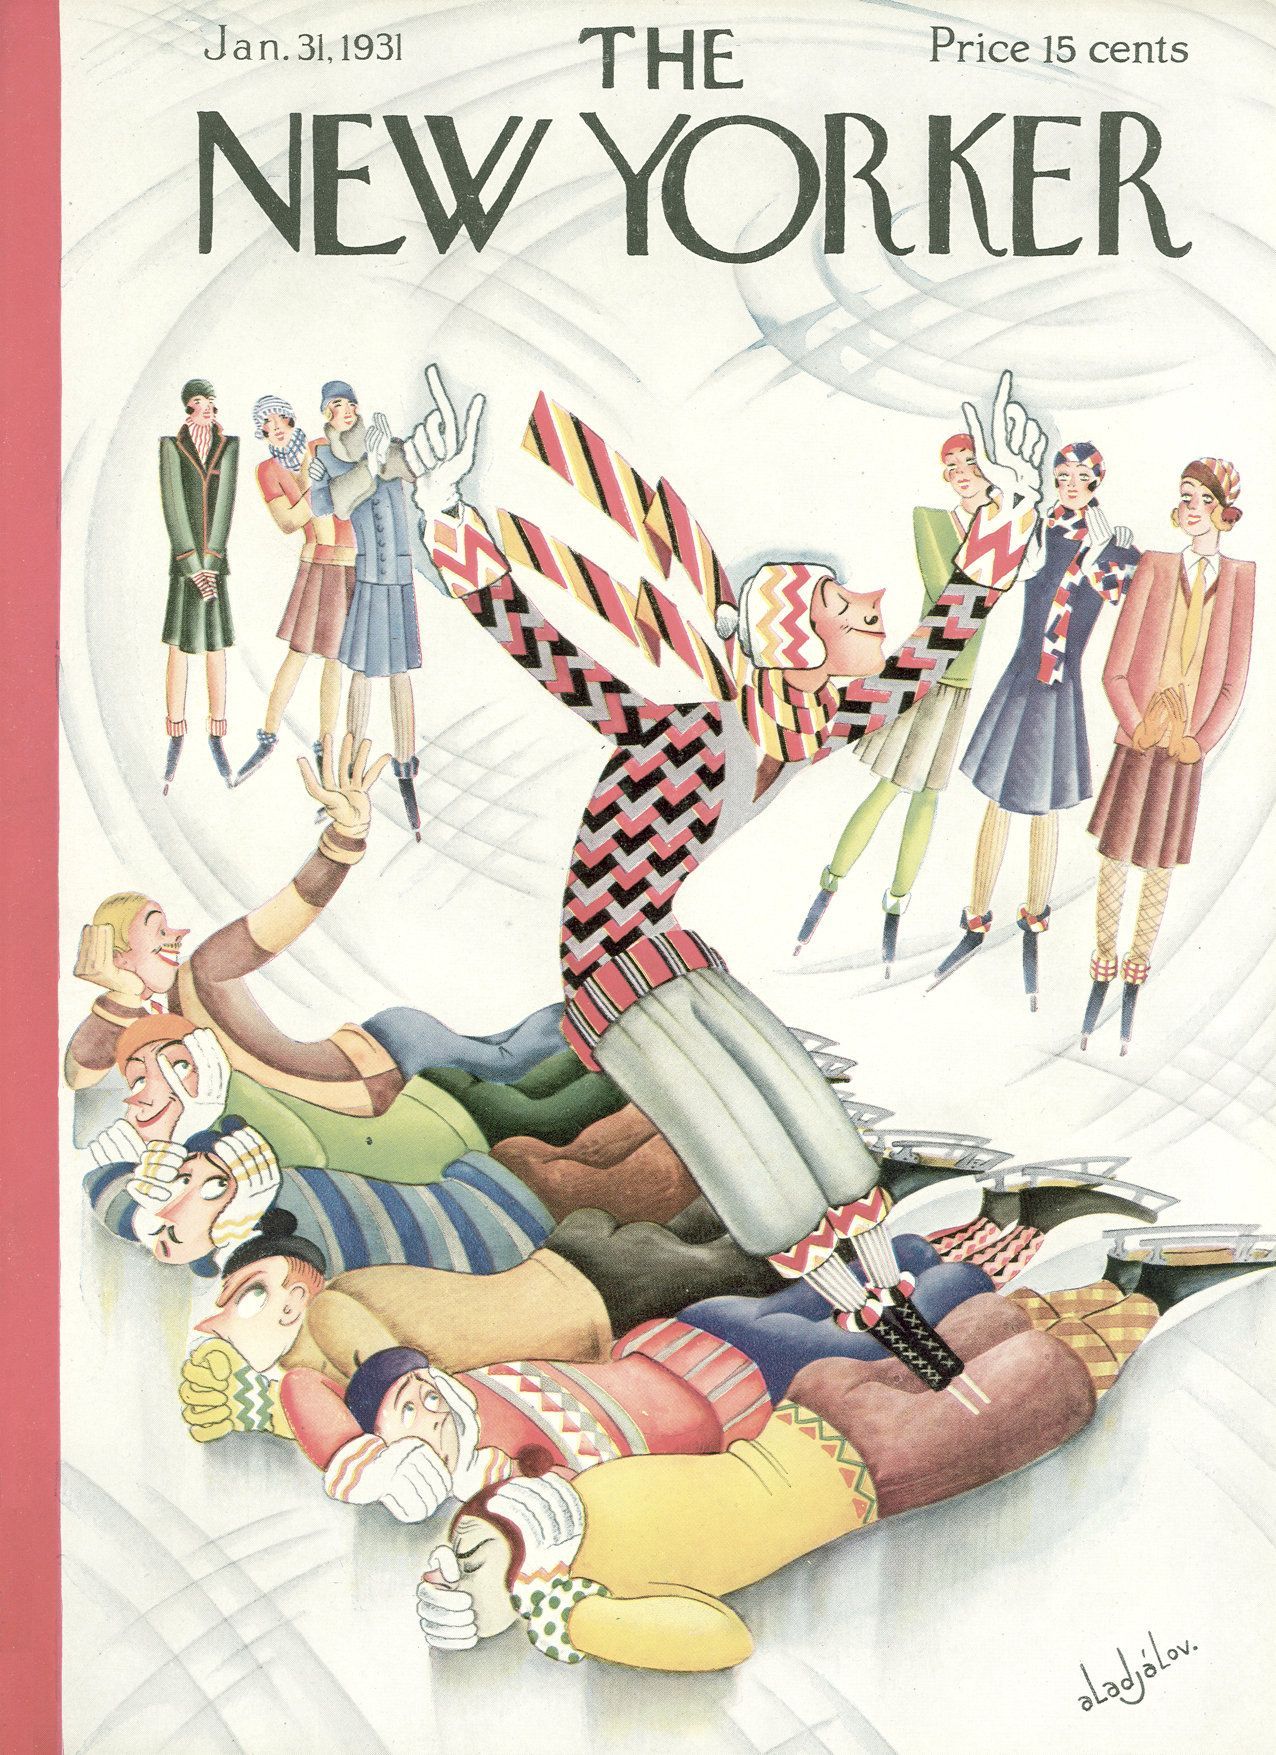 The New Yorker - Saturday, January 31, 1931 - Issue # 311 - Vol. 6 - N° 50 - Cover by : Constantin Alajalov